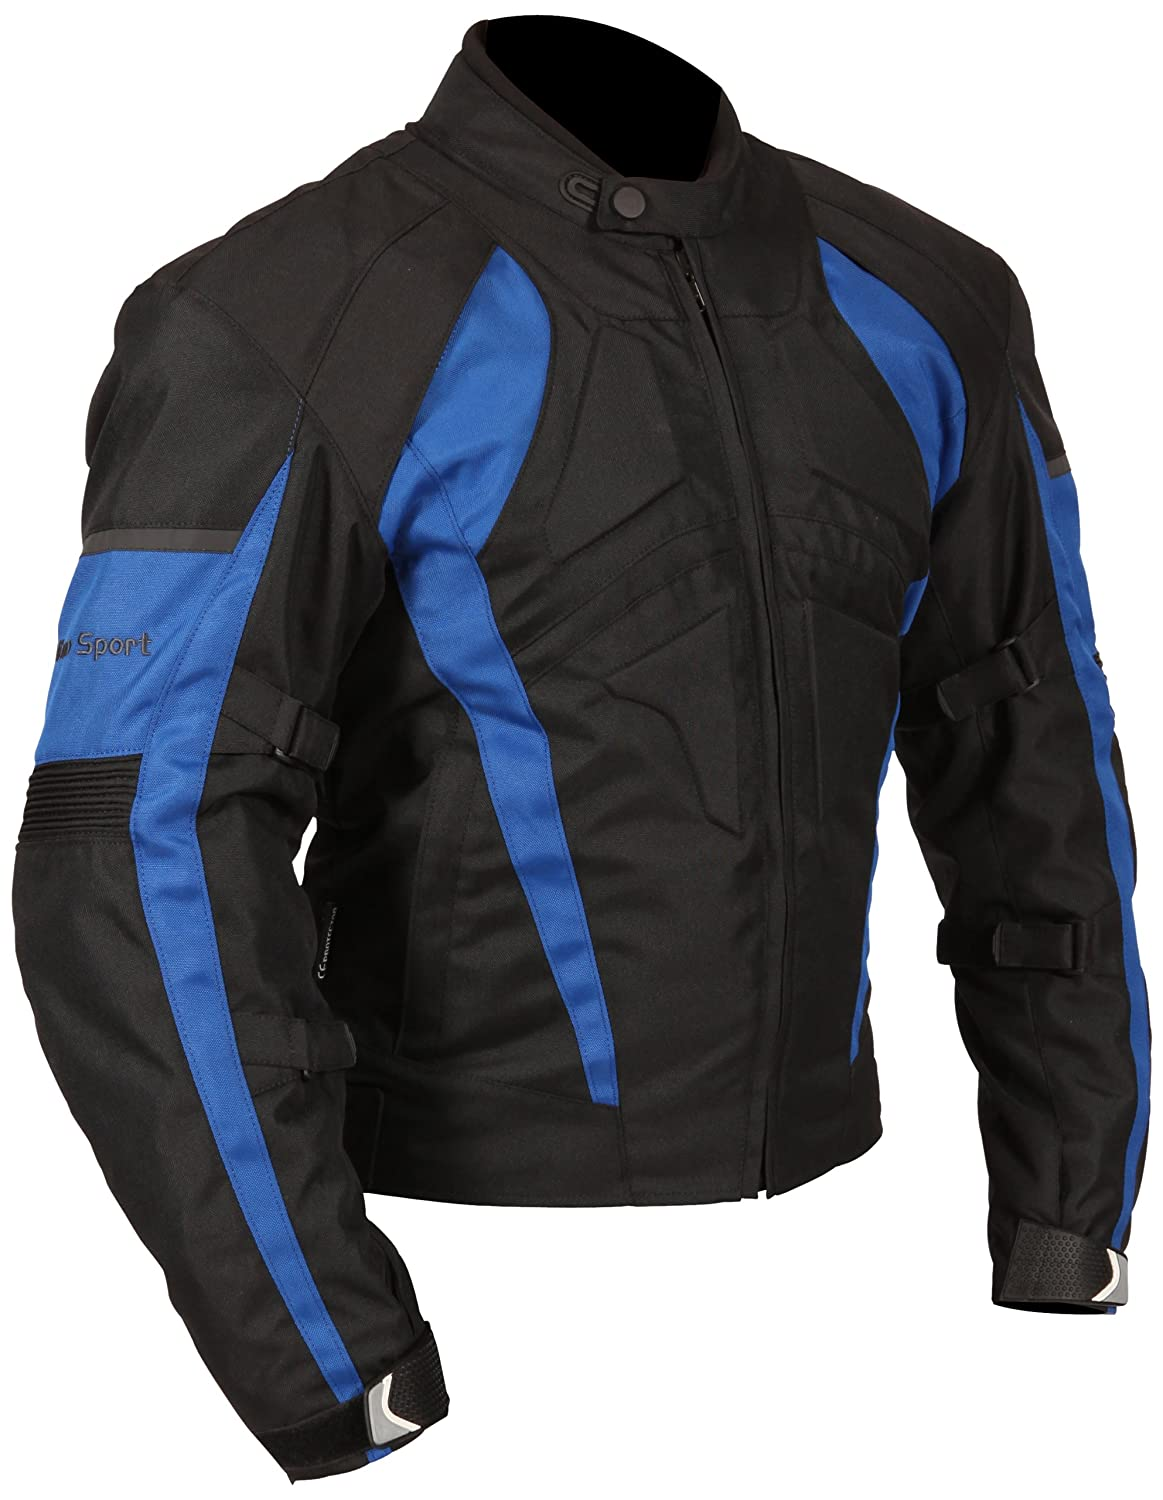 Amazon.com: Milano Sport Gamma Motorcycle Jacket with Blue Accent (Black, Large): Automotive